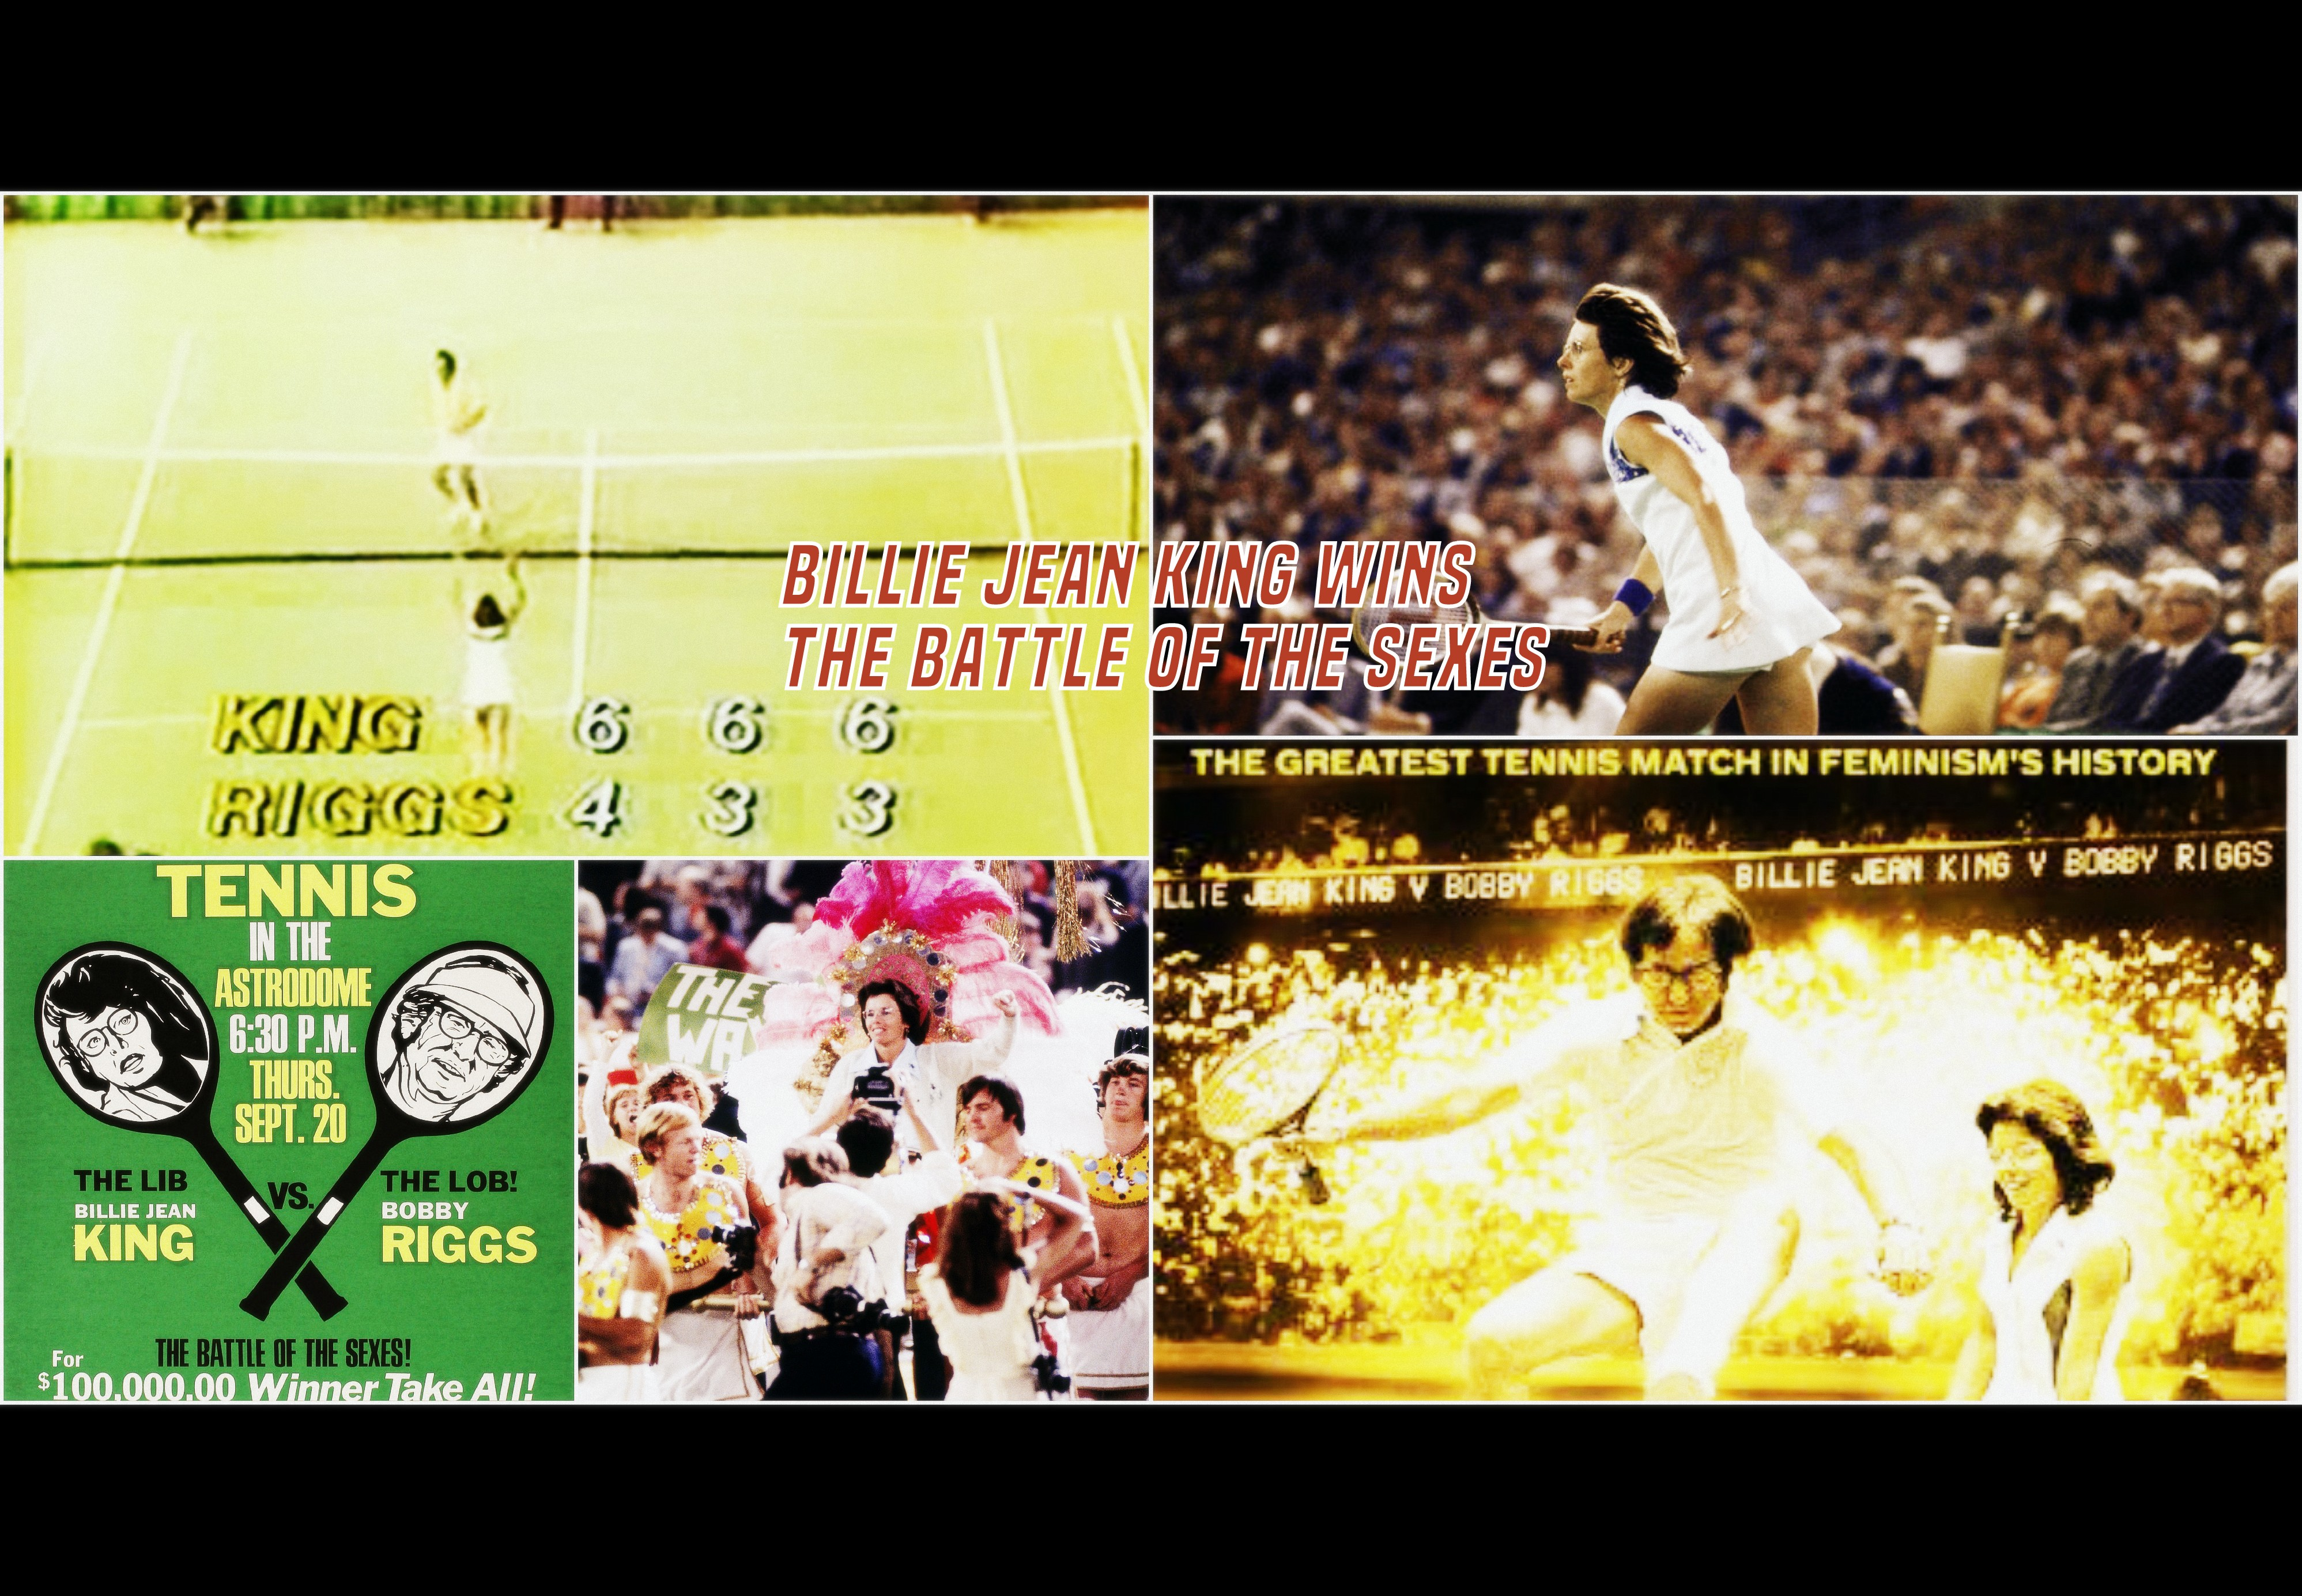 Sept-20-1973:  Billie Jean King Wins The Battle of the Sexes